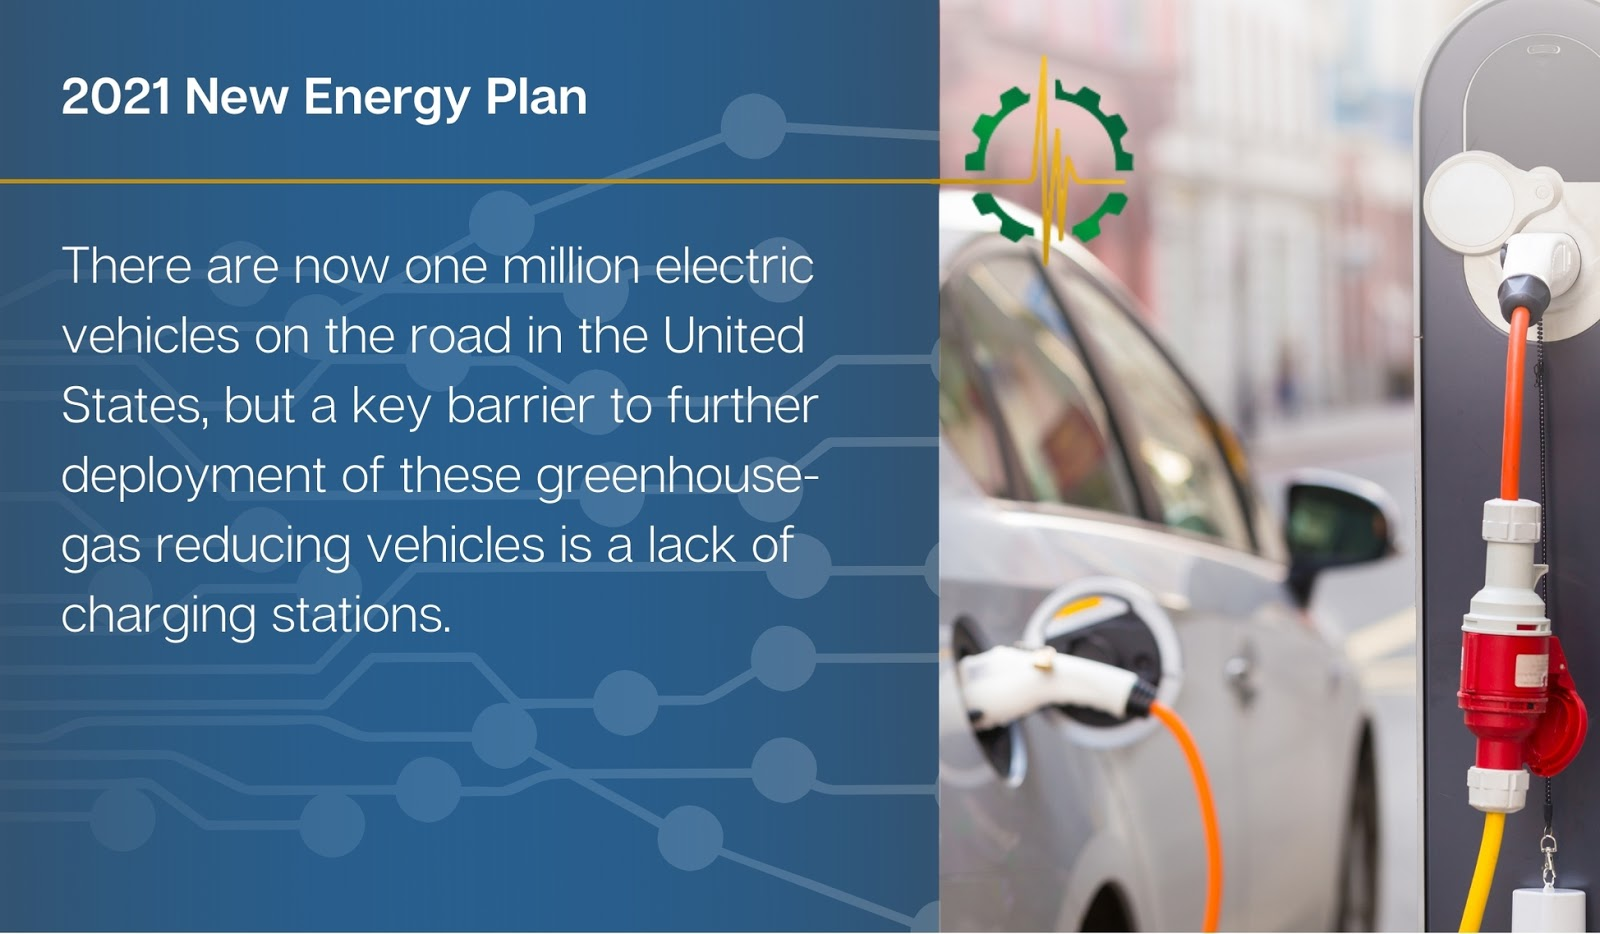 There are now one million electric vehicles on the road in the United States